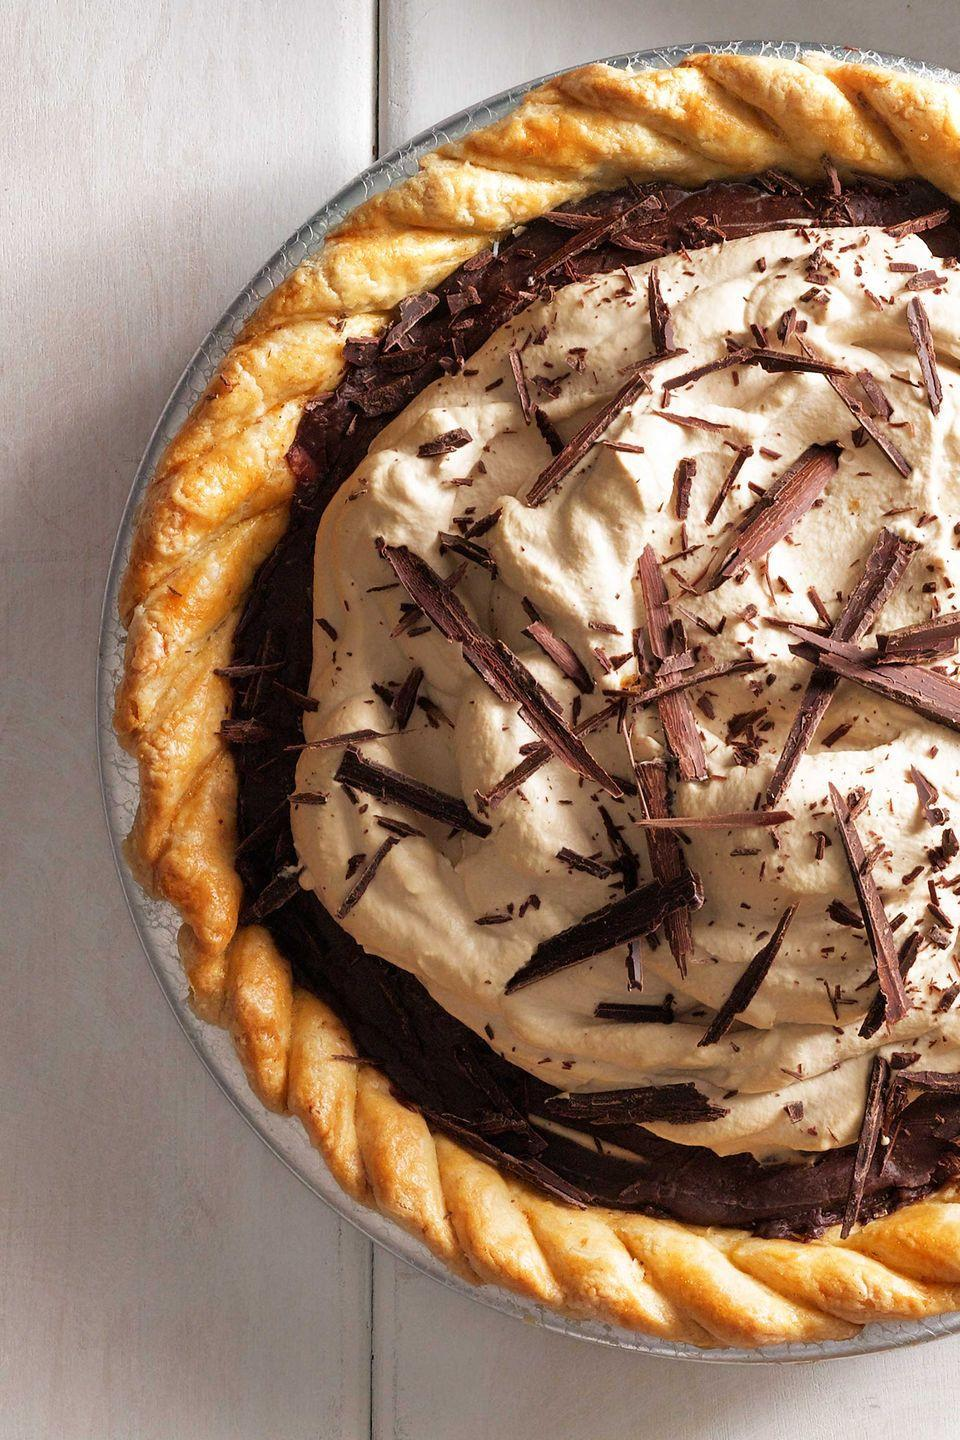 """<p>This pie is inspired by Anna Jones's winning pie at the 2013 state fair of Texas. </p><p><strong><a href=""""https://www.countryliving.com/food-drinks/recipes/a5618/decadent-chocolate-espresso-pie-recipe-clx0914/"""" rel=""""nofollow noopener"""" target=""""_blank"""" data-ylk=""""slk:Get the recipe"""" class=""""link rapid-noclick-resp"""">Get the recipe</a>.</strong></p>"""